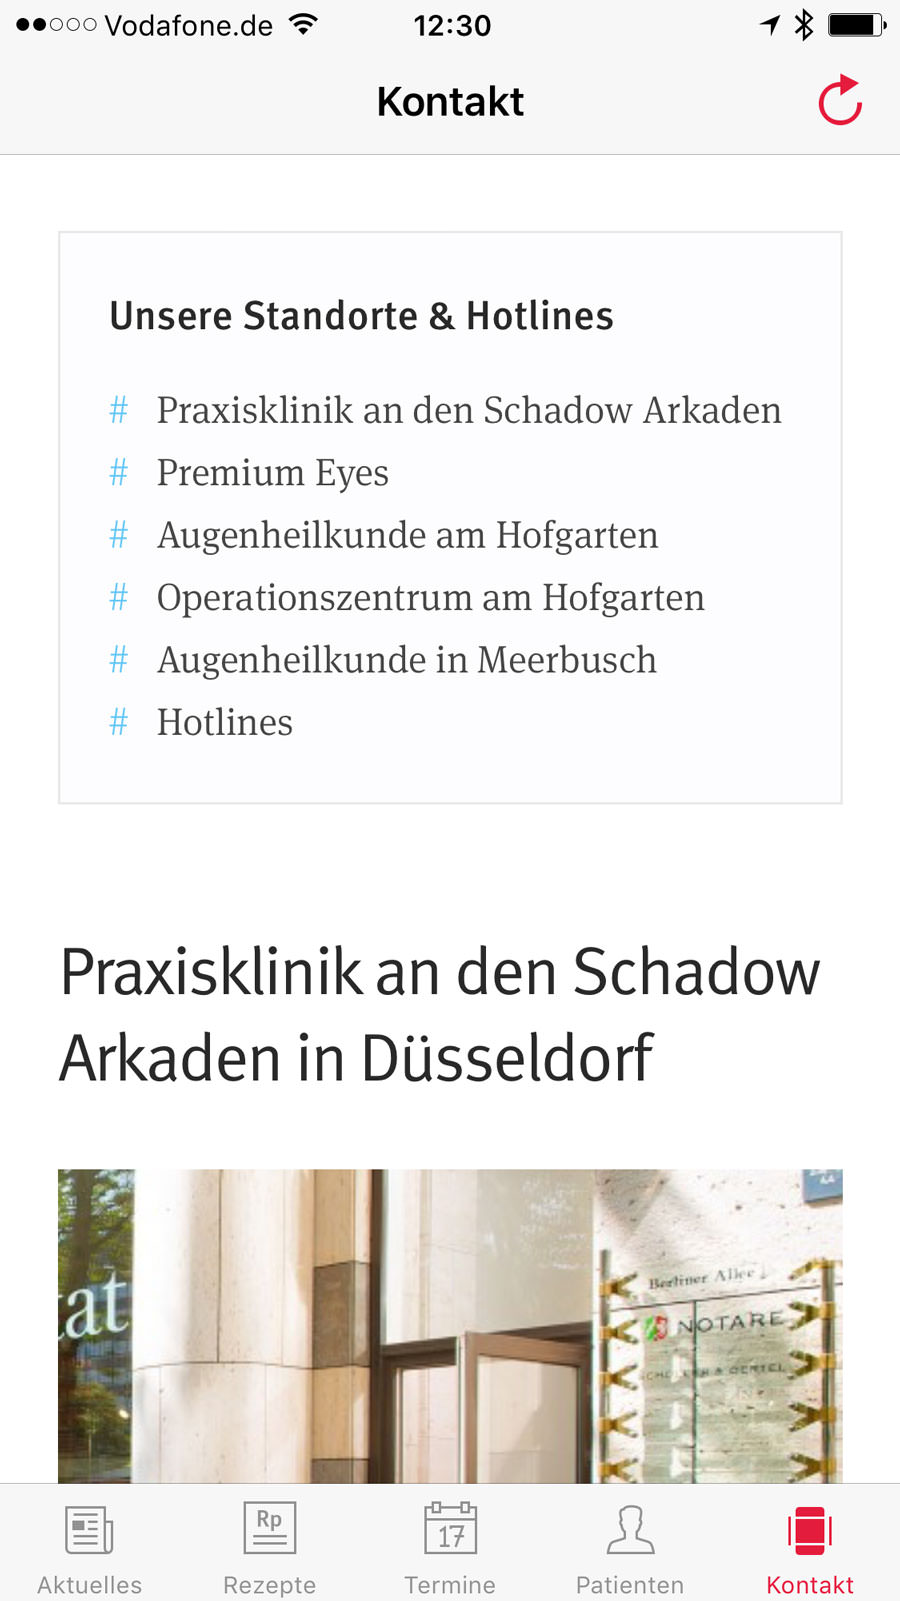 Screenshot der Kontaktansicht